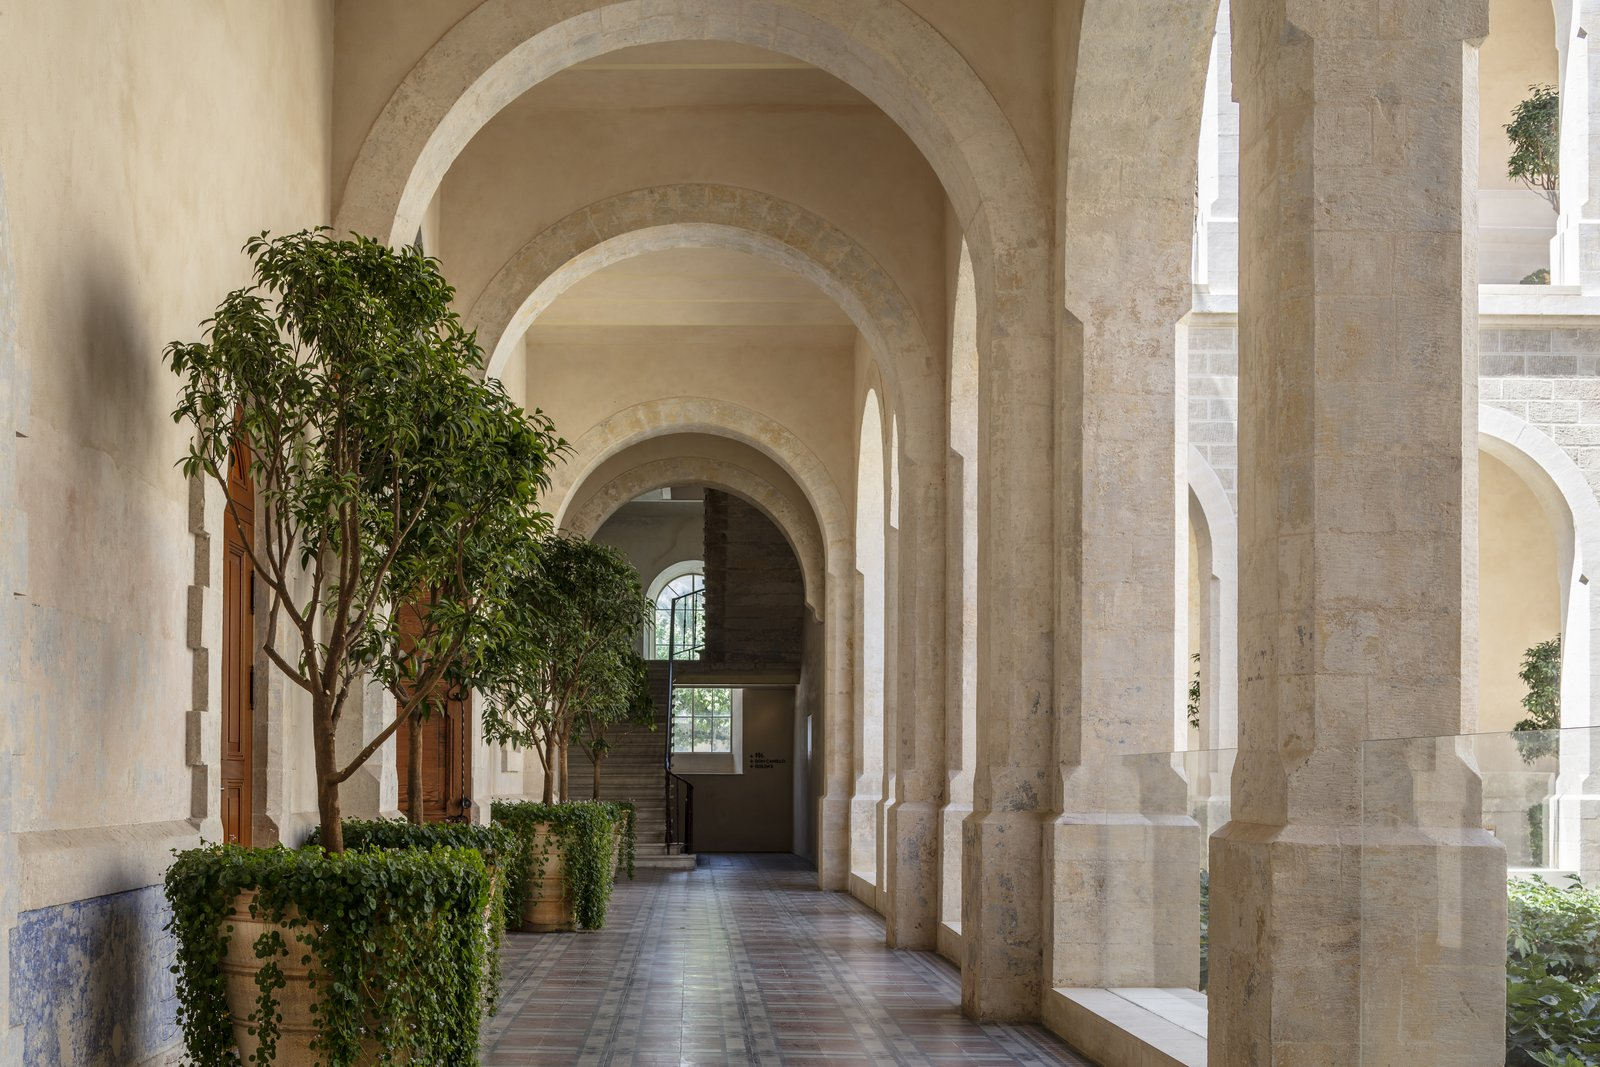 Hallway A series of arches and colonnades lead to a secluded central courtyard situated between the old structures and Pawson's new addition.  Jaffa Hotel from John Pawson Turns an Old Hospital and Convent Into a Luxe Hotel in Israel